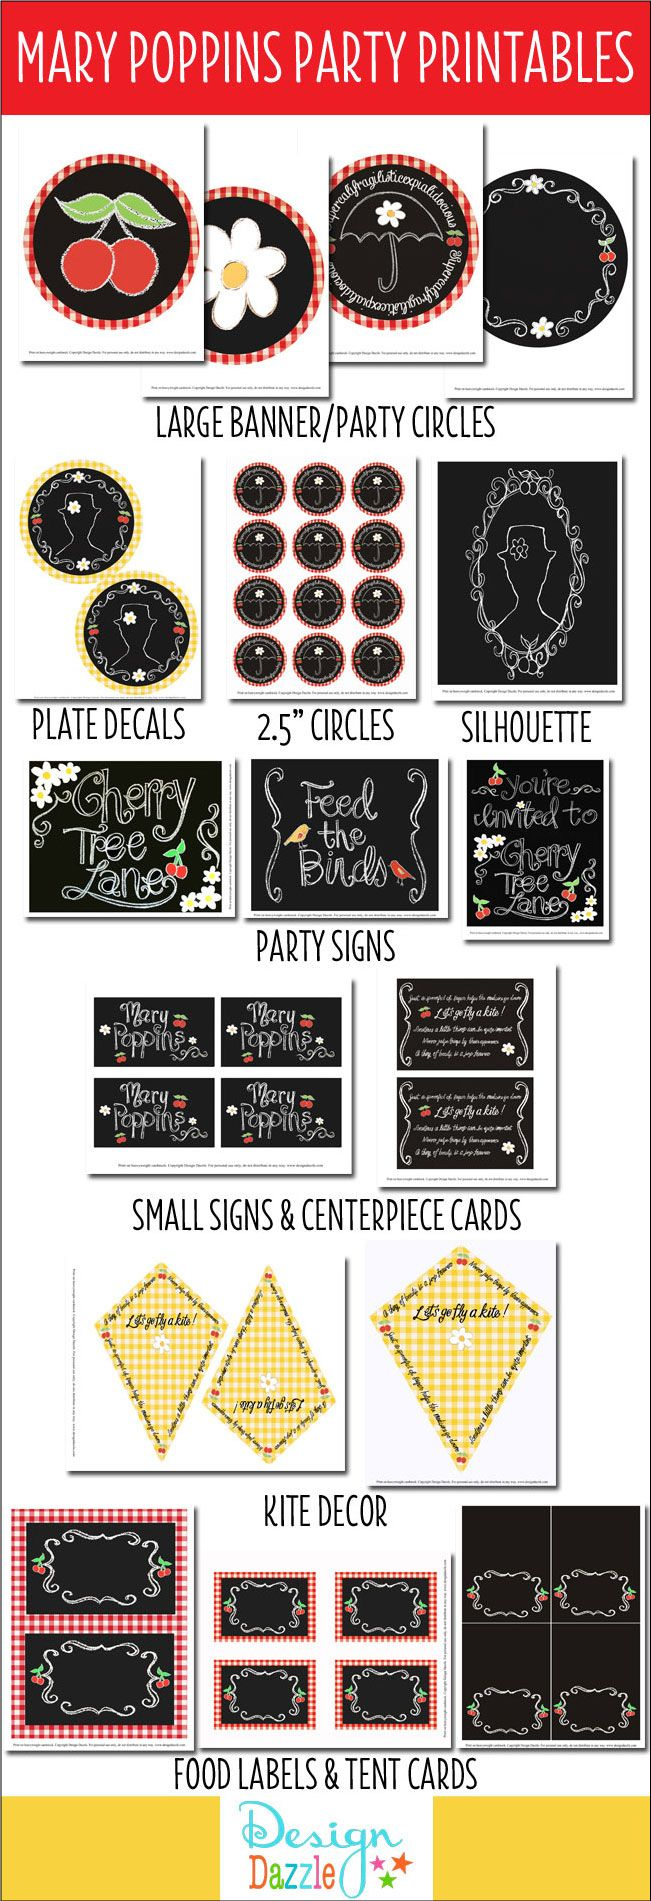 Mary Poppins party printables - everything you need to create a fabulous party!